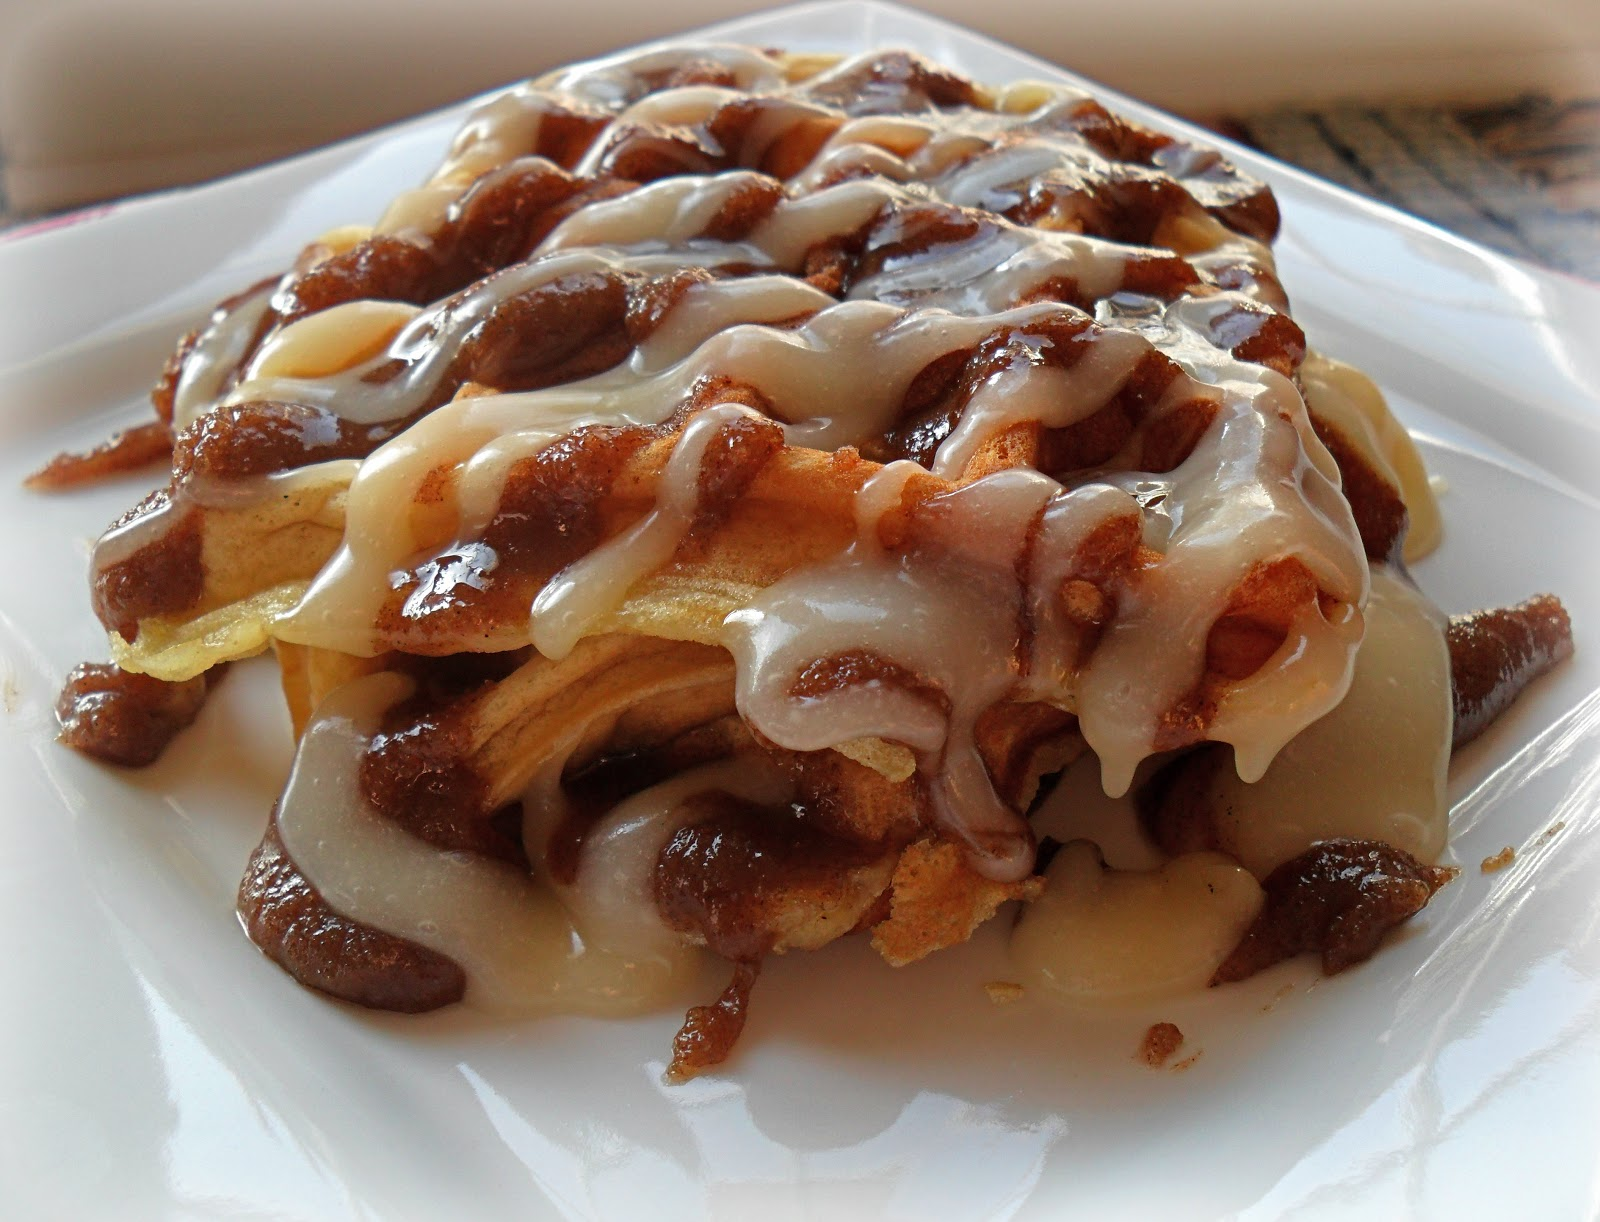 Candid Cooking: Cinnamon Roll Waffles